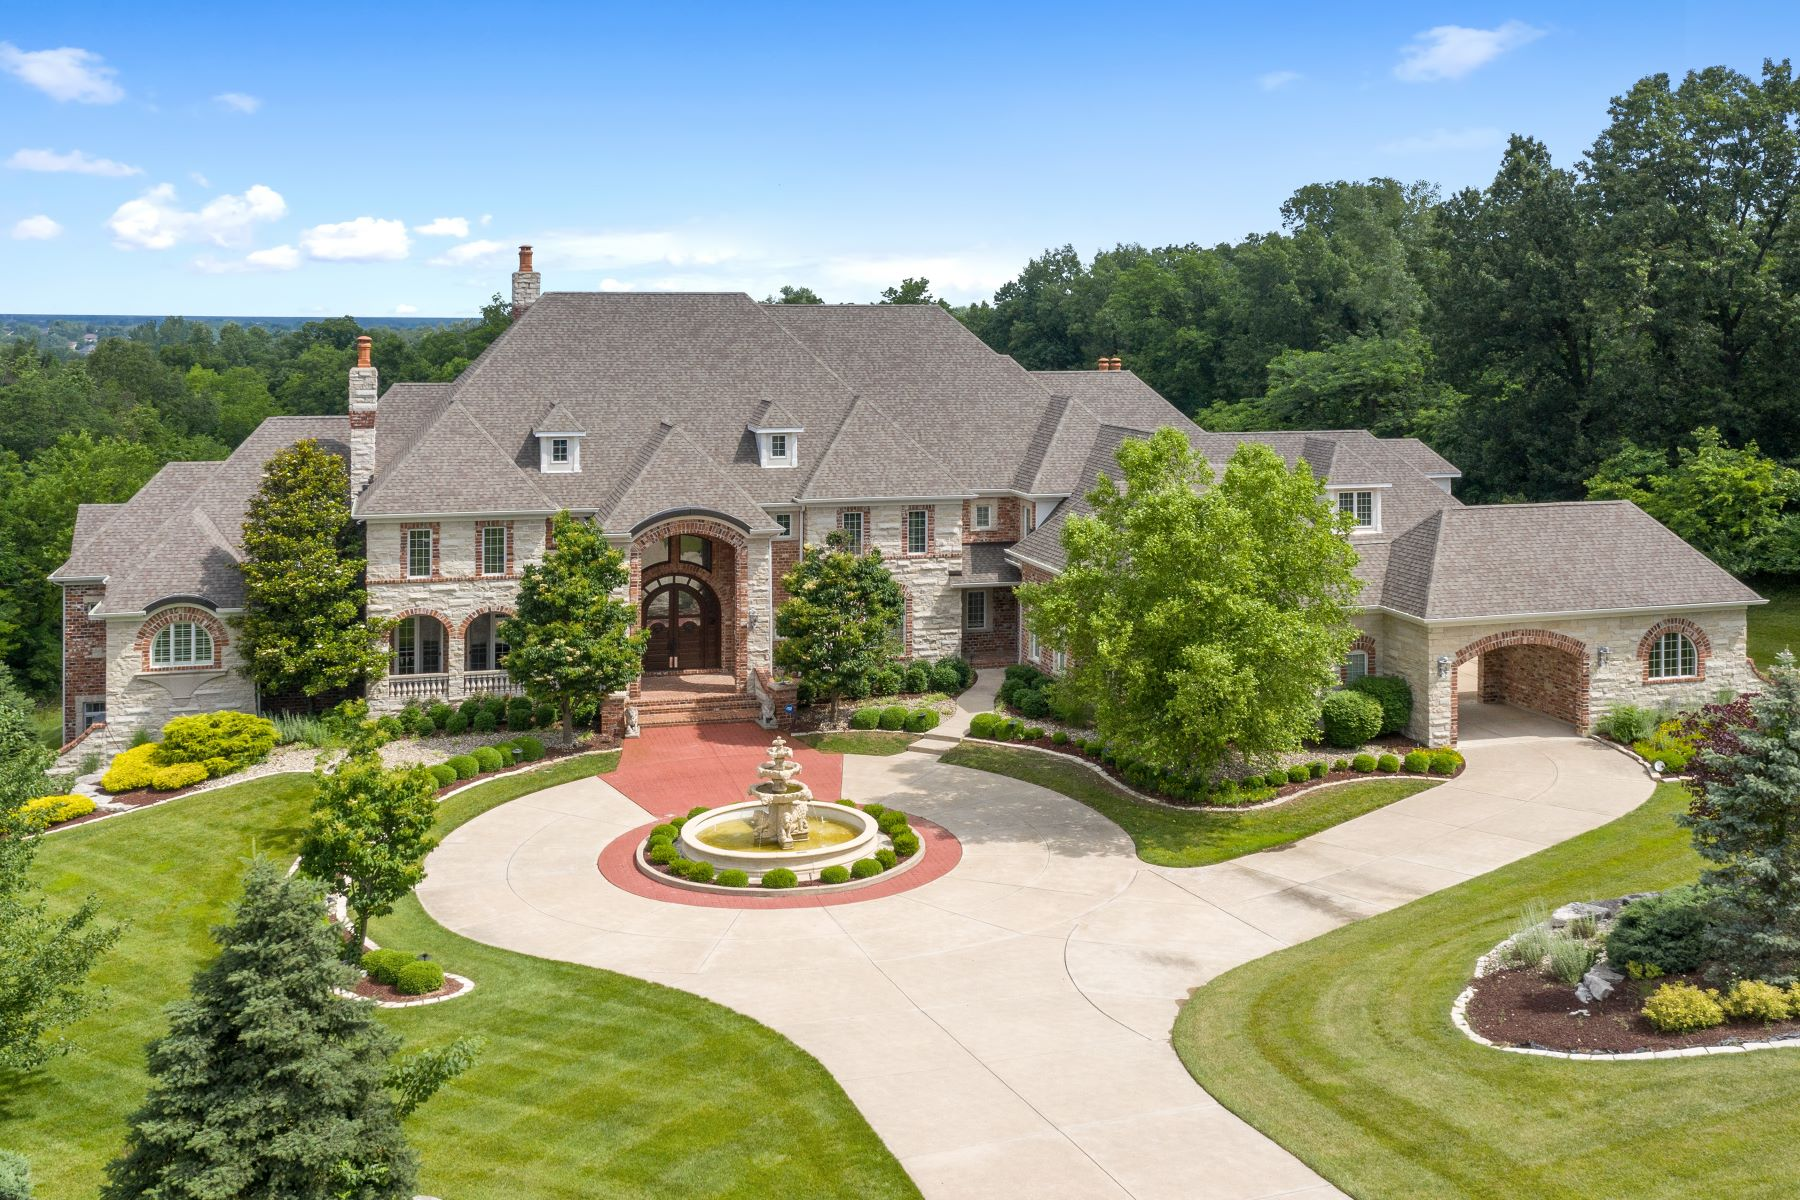 Single Family Homes for Active at Stunning Sophisticated Upper Whitmoor Estate 11 Upper Whitmoor Drive Weldon Spring, Missouri 63304 United States